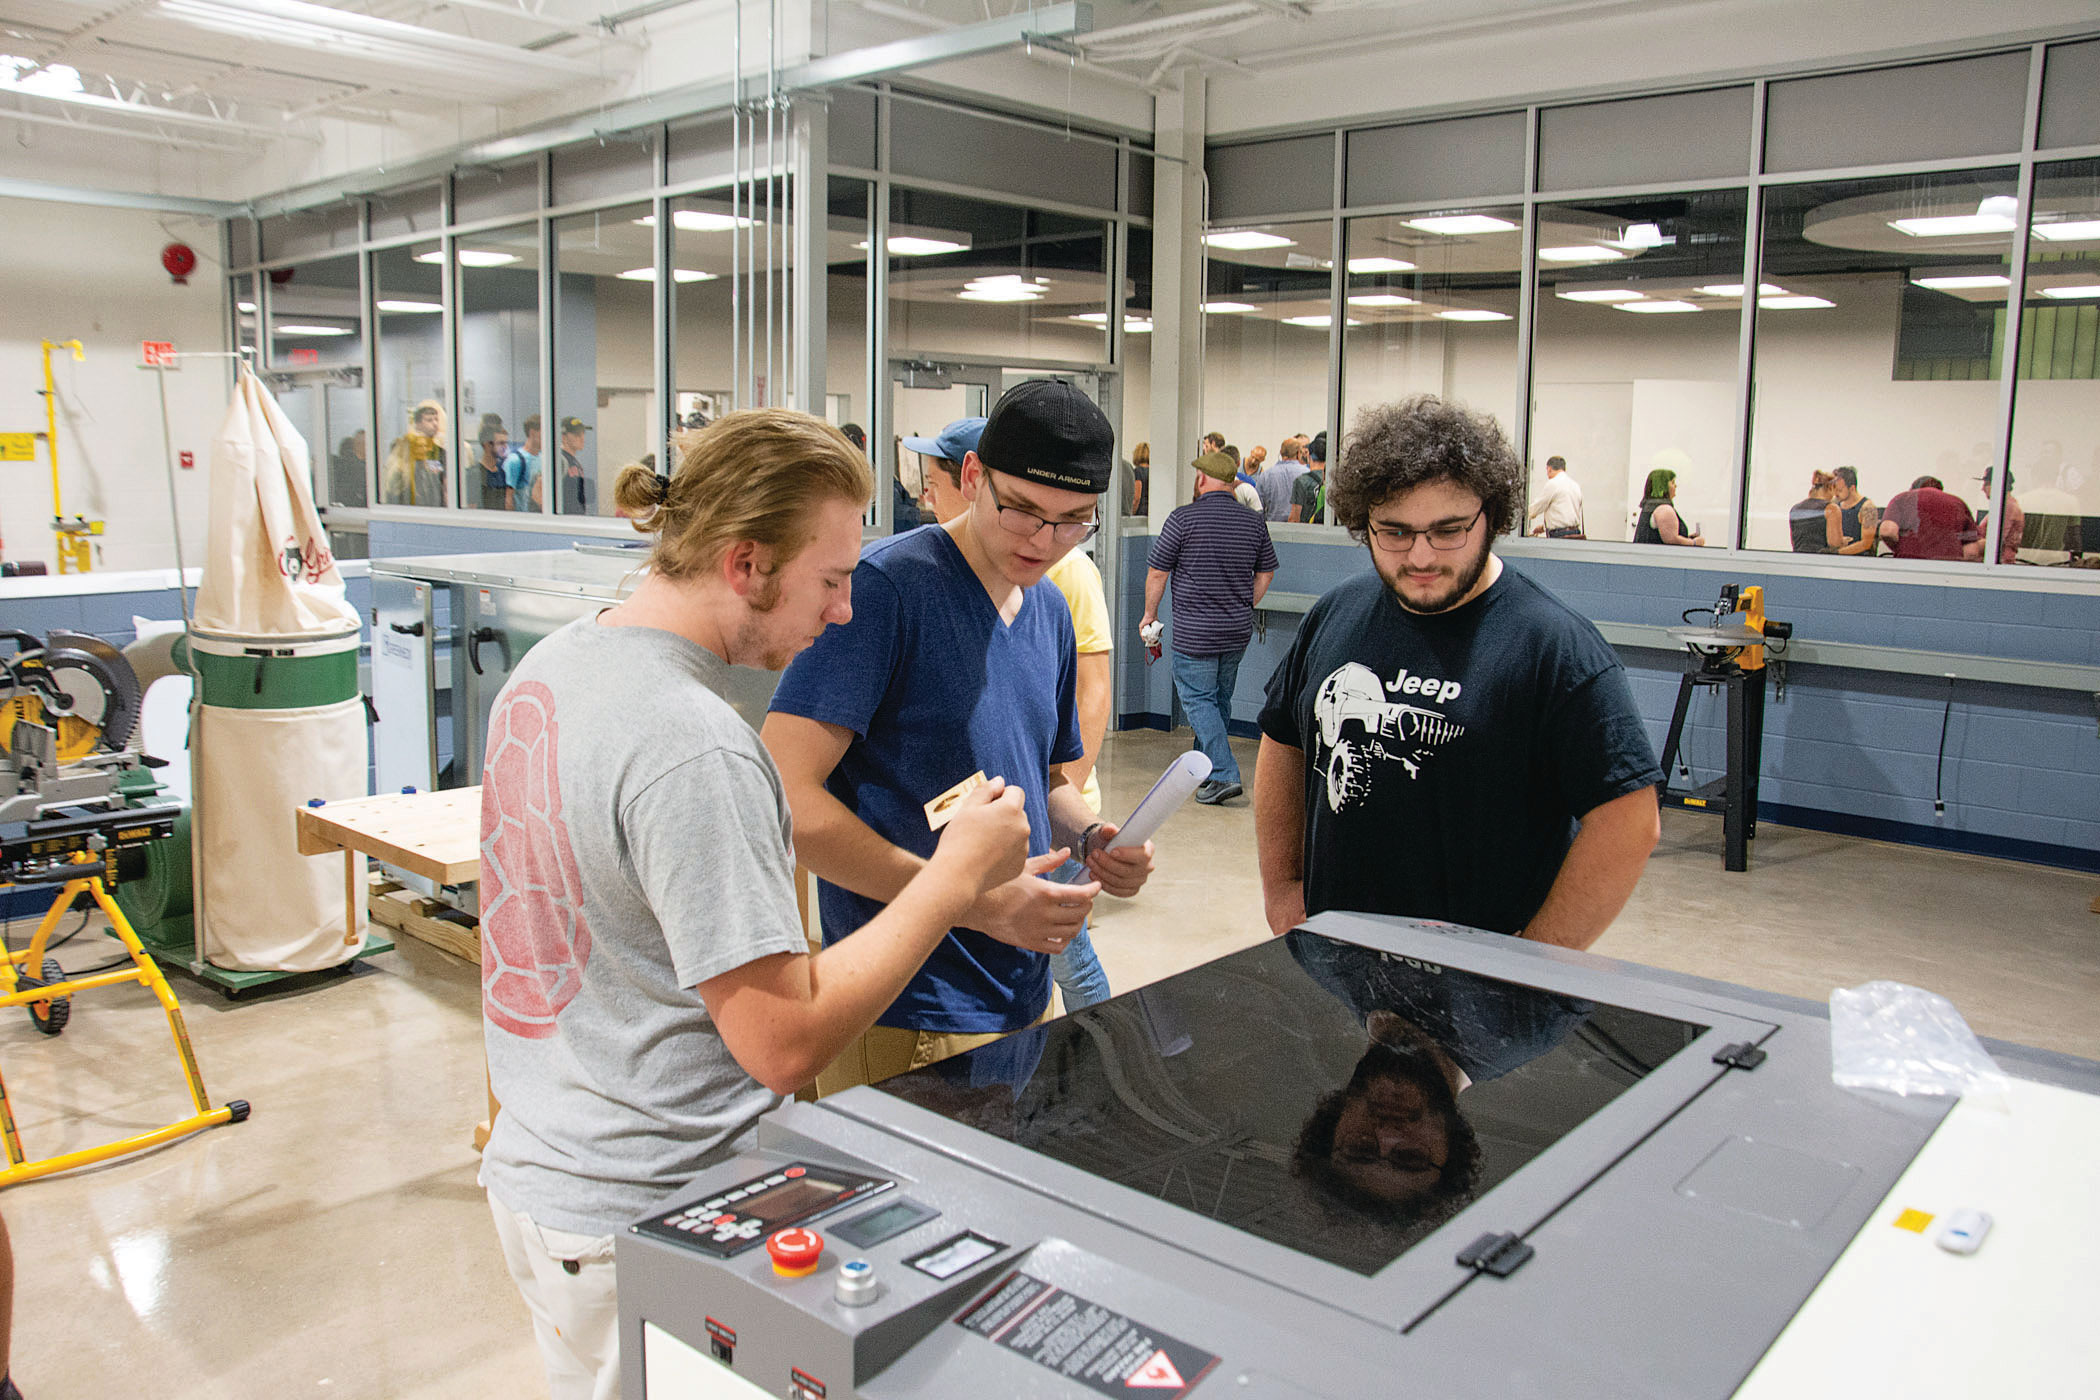 Students explore the makerspace's equipment during an early-semester open house at the new facility.